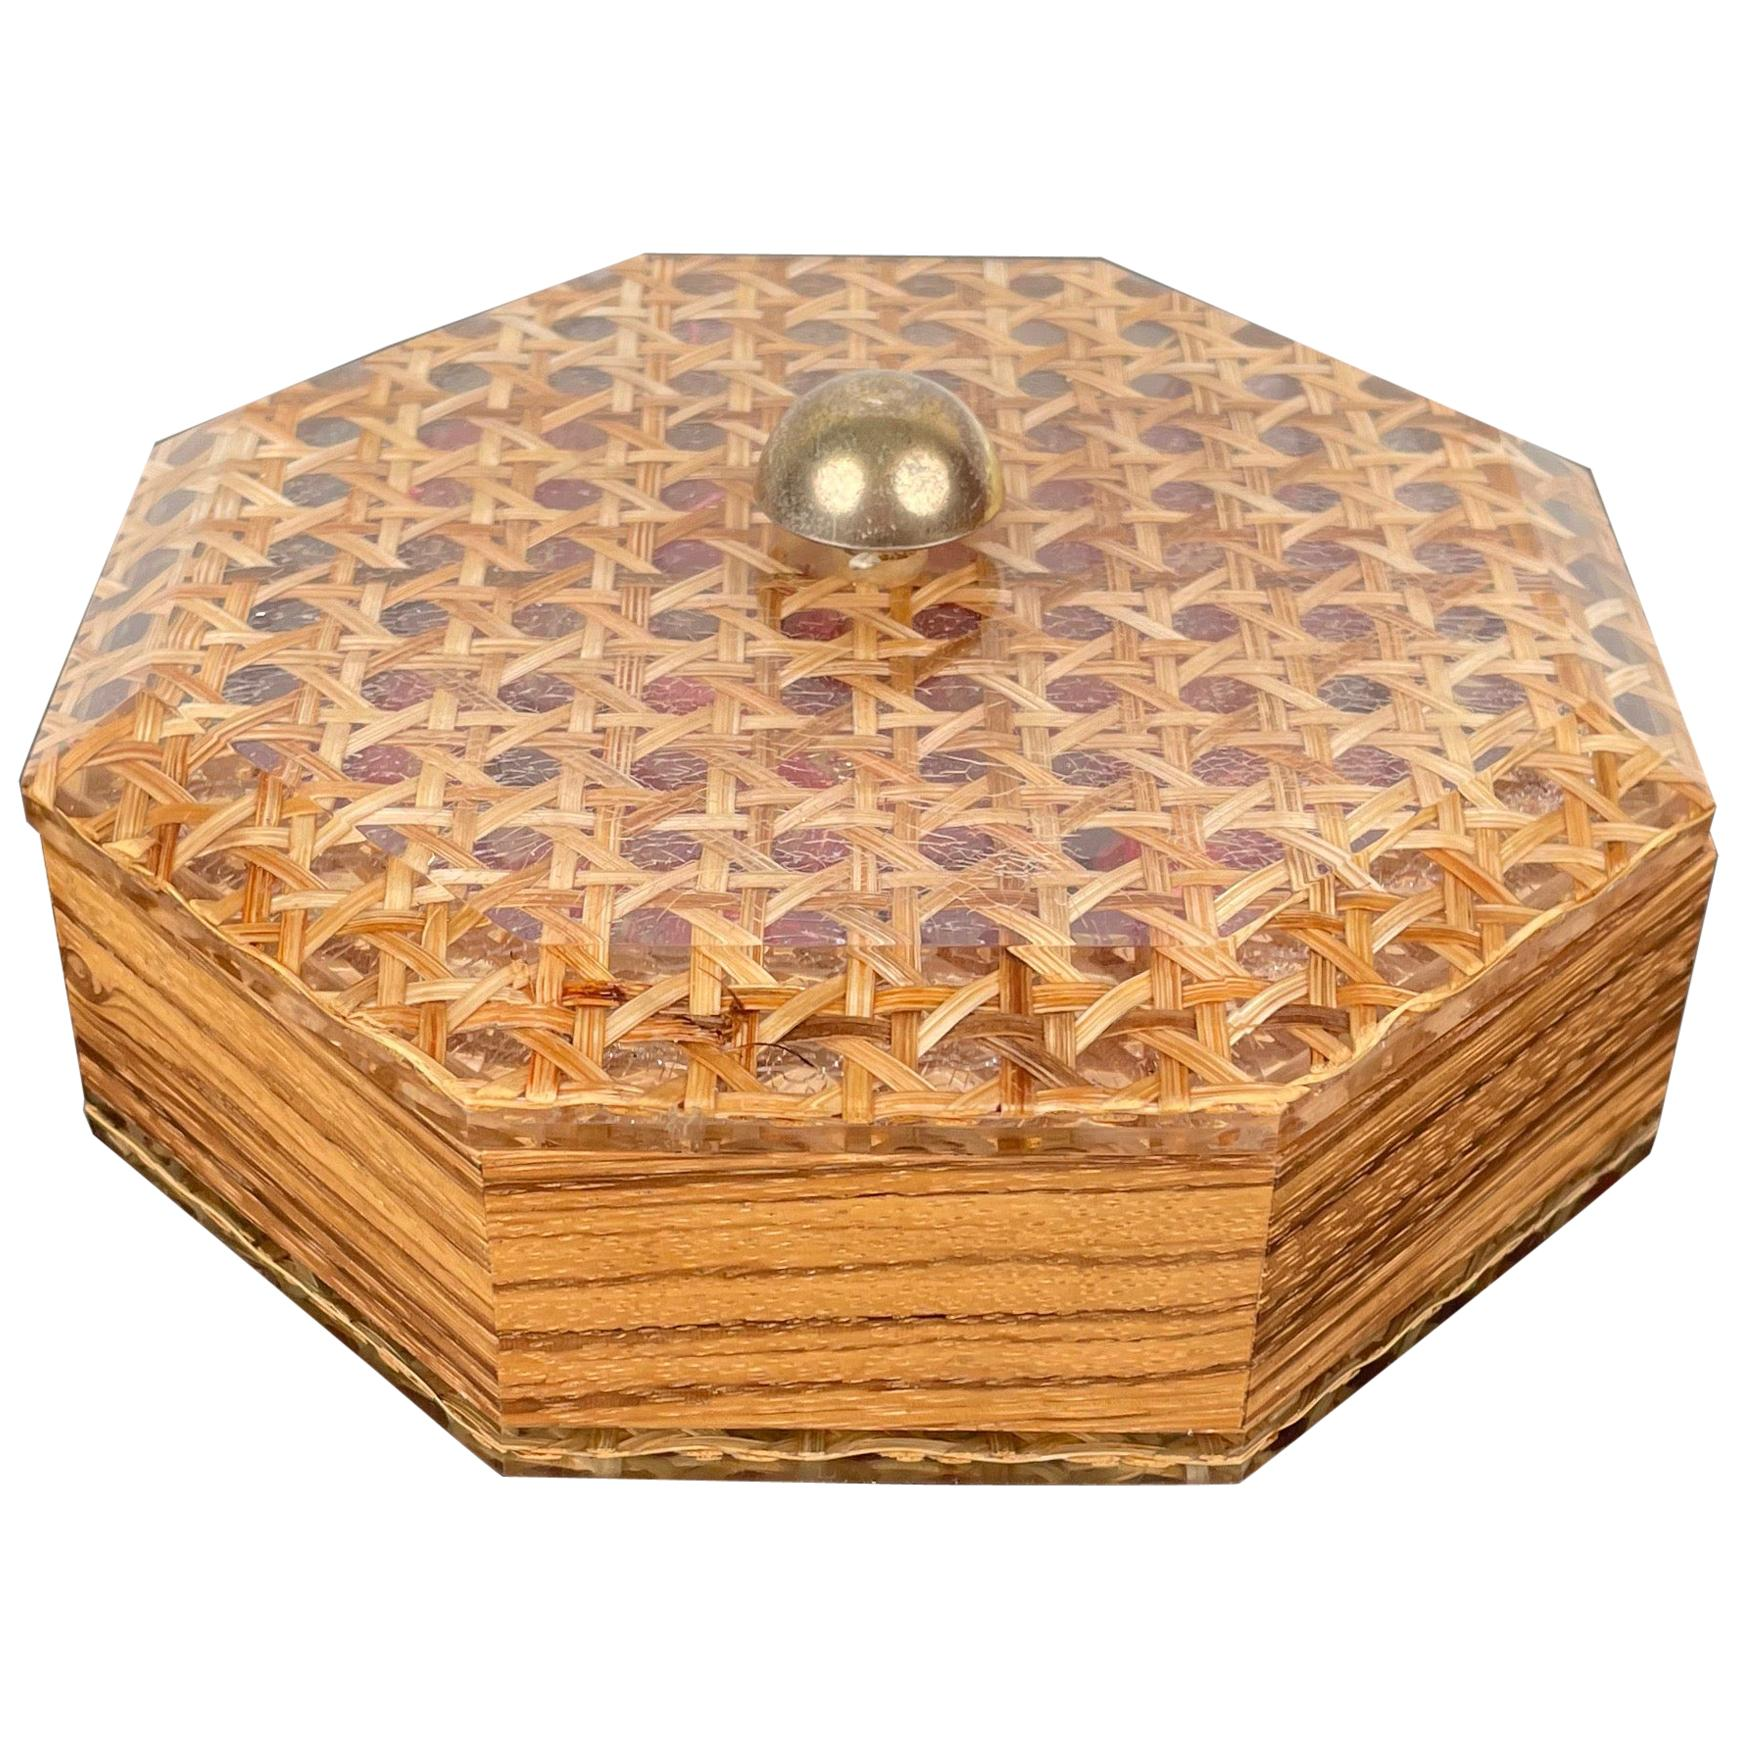 Octagonal Box in Lucite Wicker Wood and Brass Christian Dior Style, France 1970s